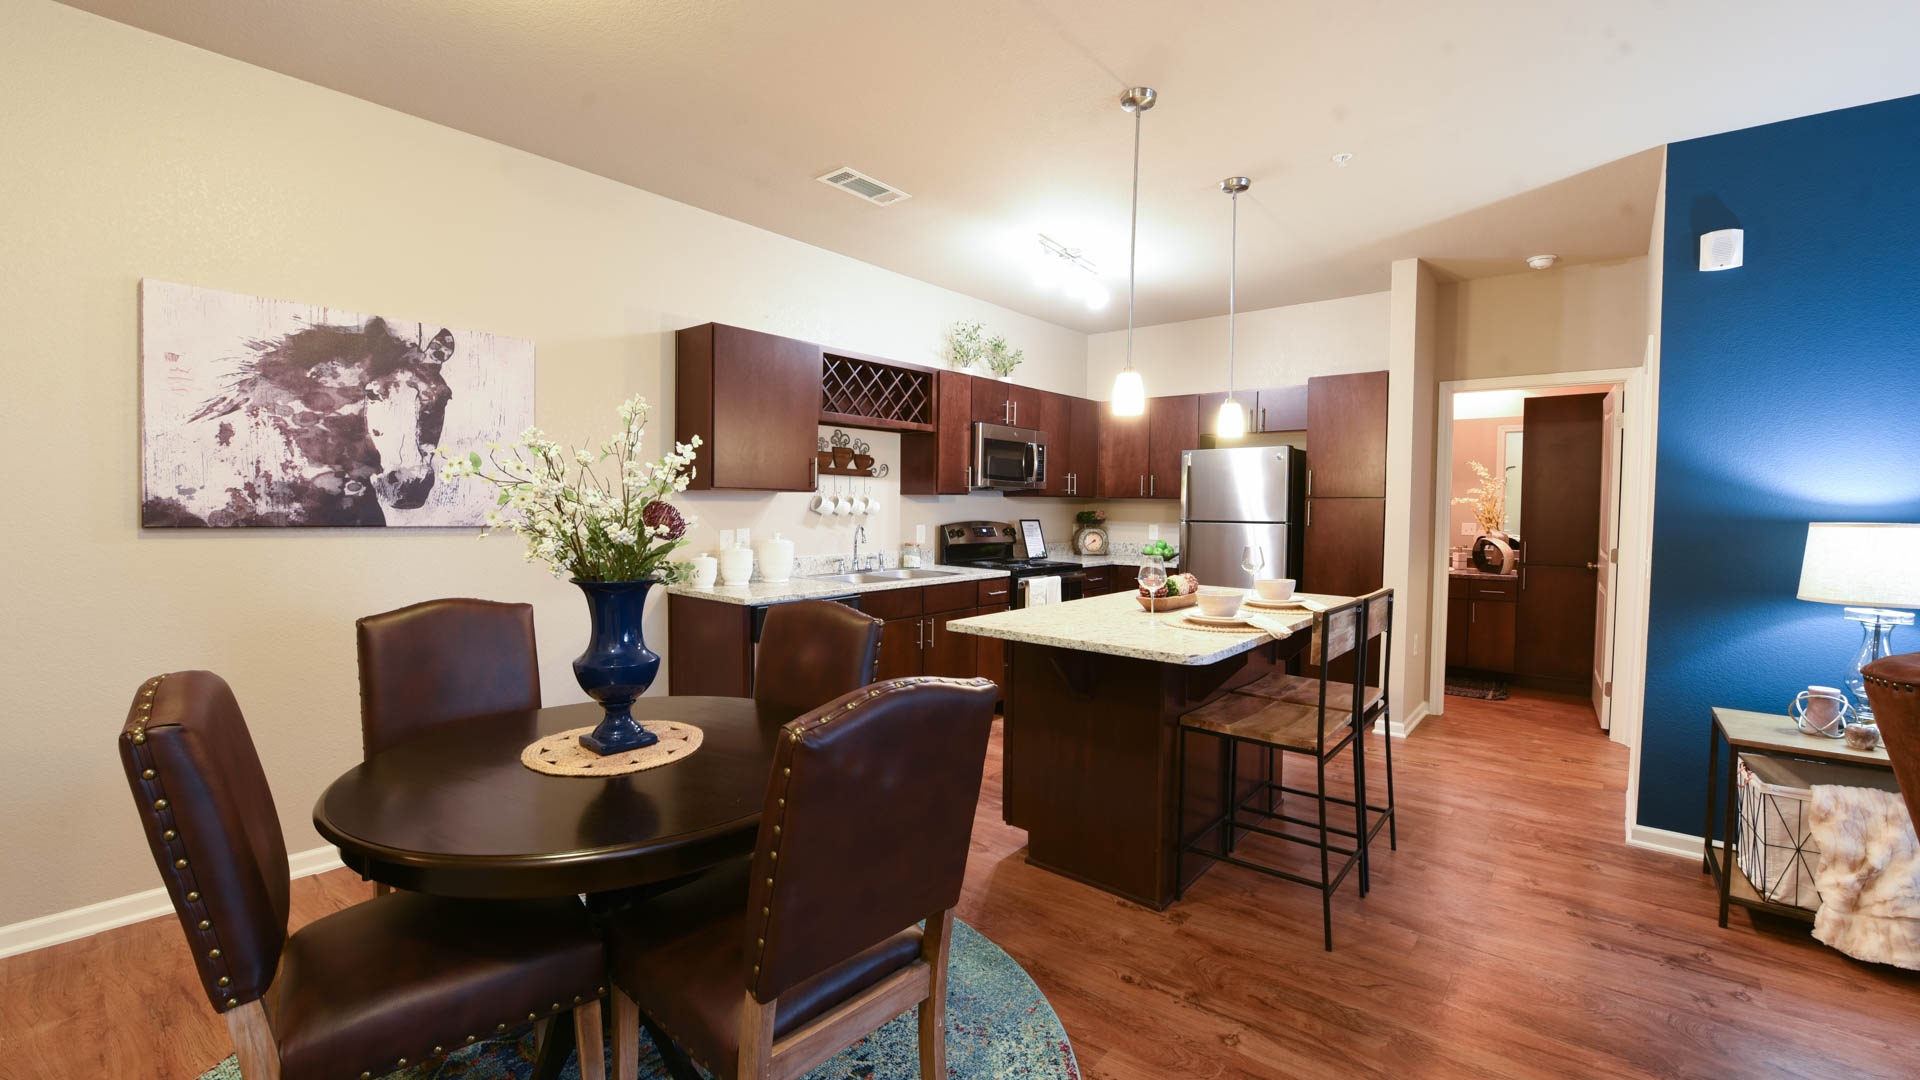 Kitchen and Dining Room at Springs at Foothill Farms in Colorado Springs